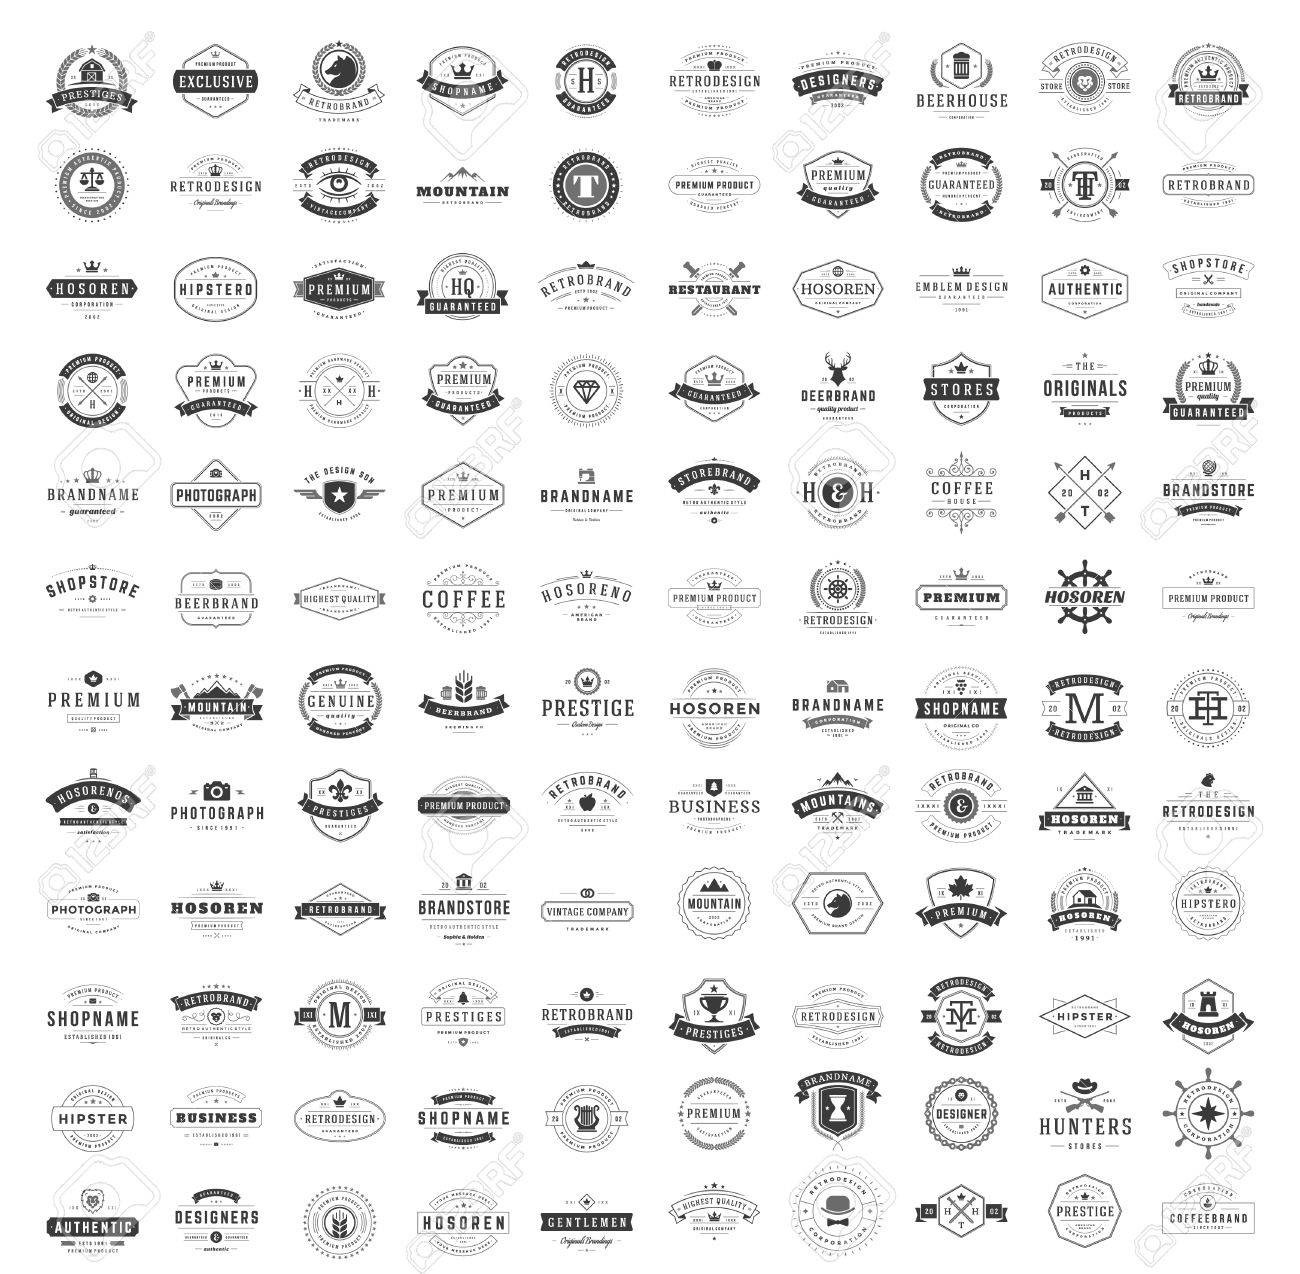 Vintage Logos Design Templates Set. Vector logotypes elements collection, Icons Symbols, Retro Labels, Badges, Silhouettes. Big Collection 120 Items. - 57142358